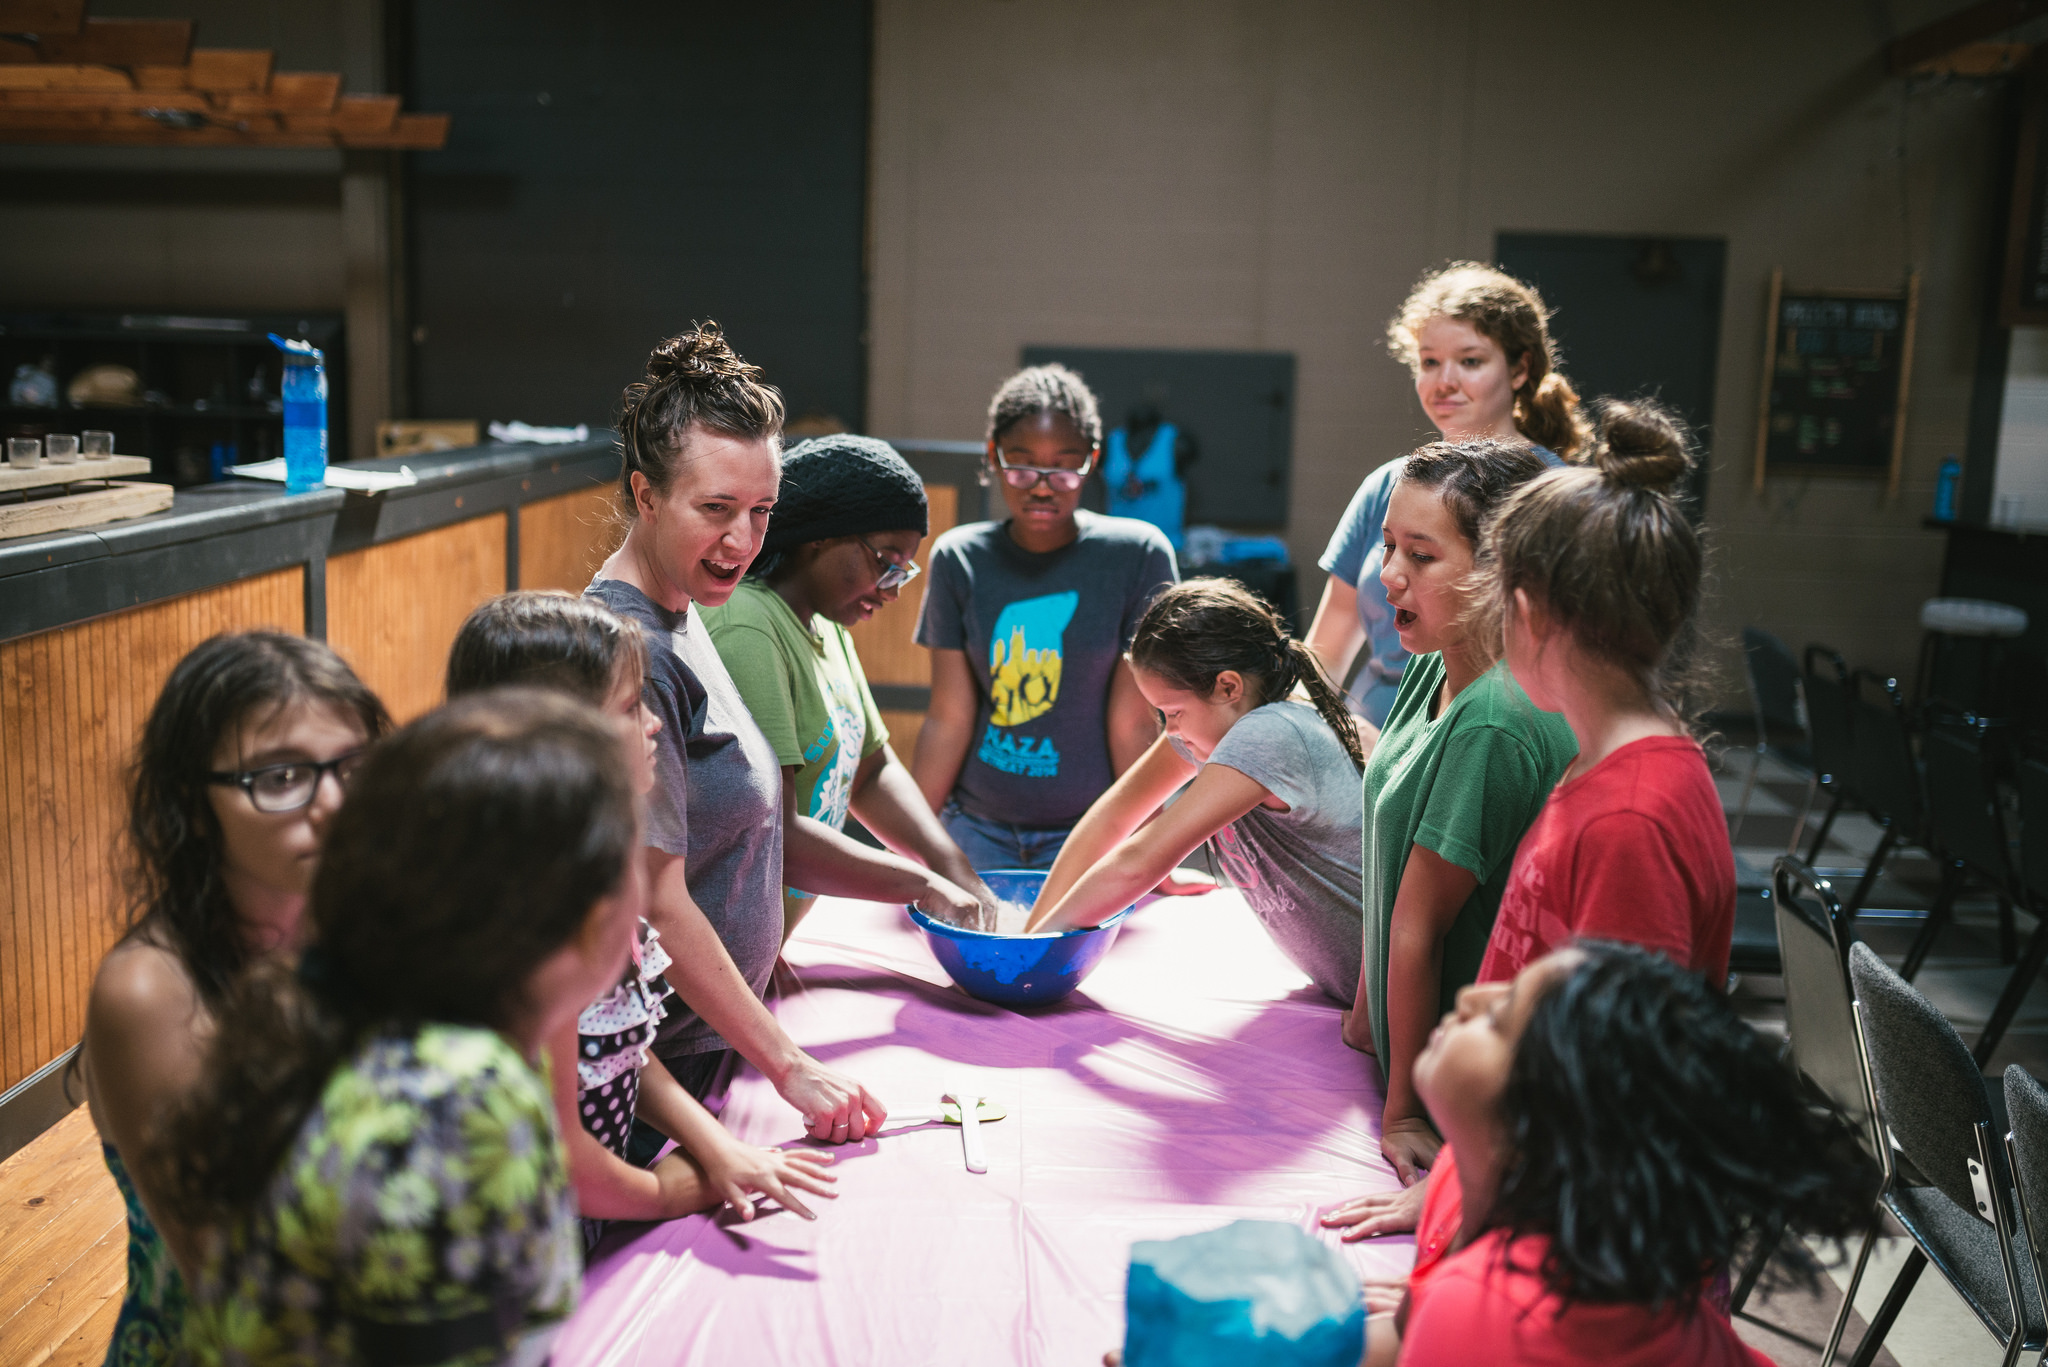 Cooking class is a favorite activity for many youth. Kids learn the basics of preparing healthy food that tastes good!